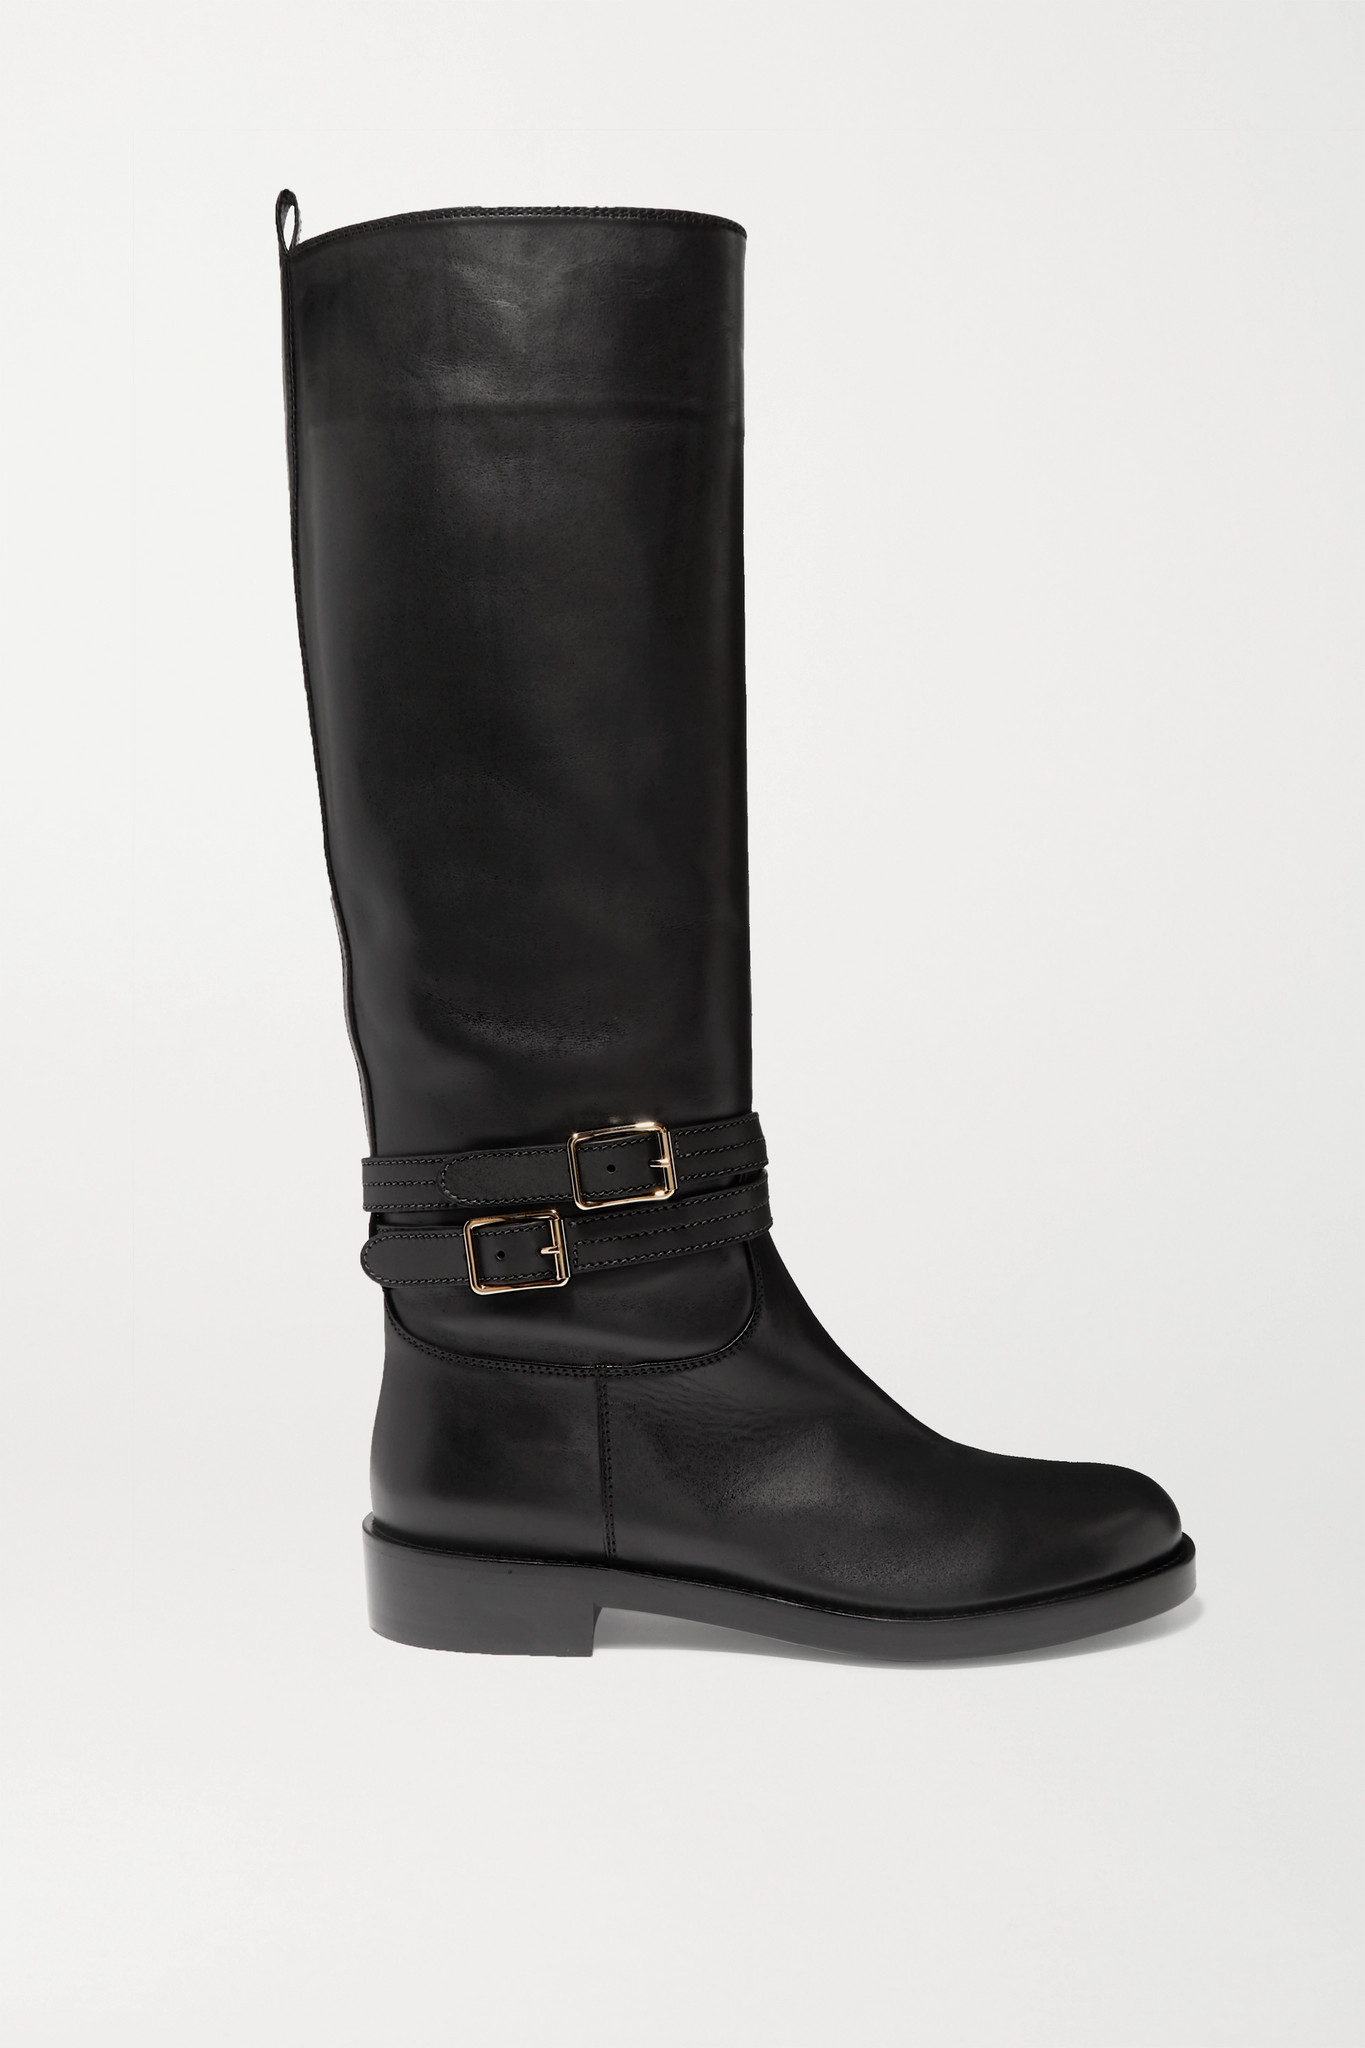 GIANVITO ROSSI - Buckled Leather Knee Boots - Black - IT38